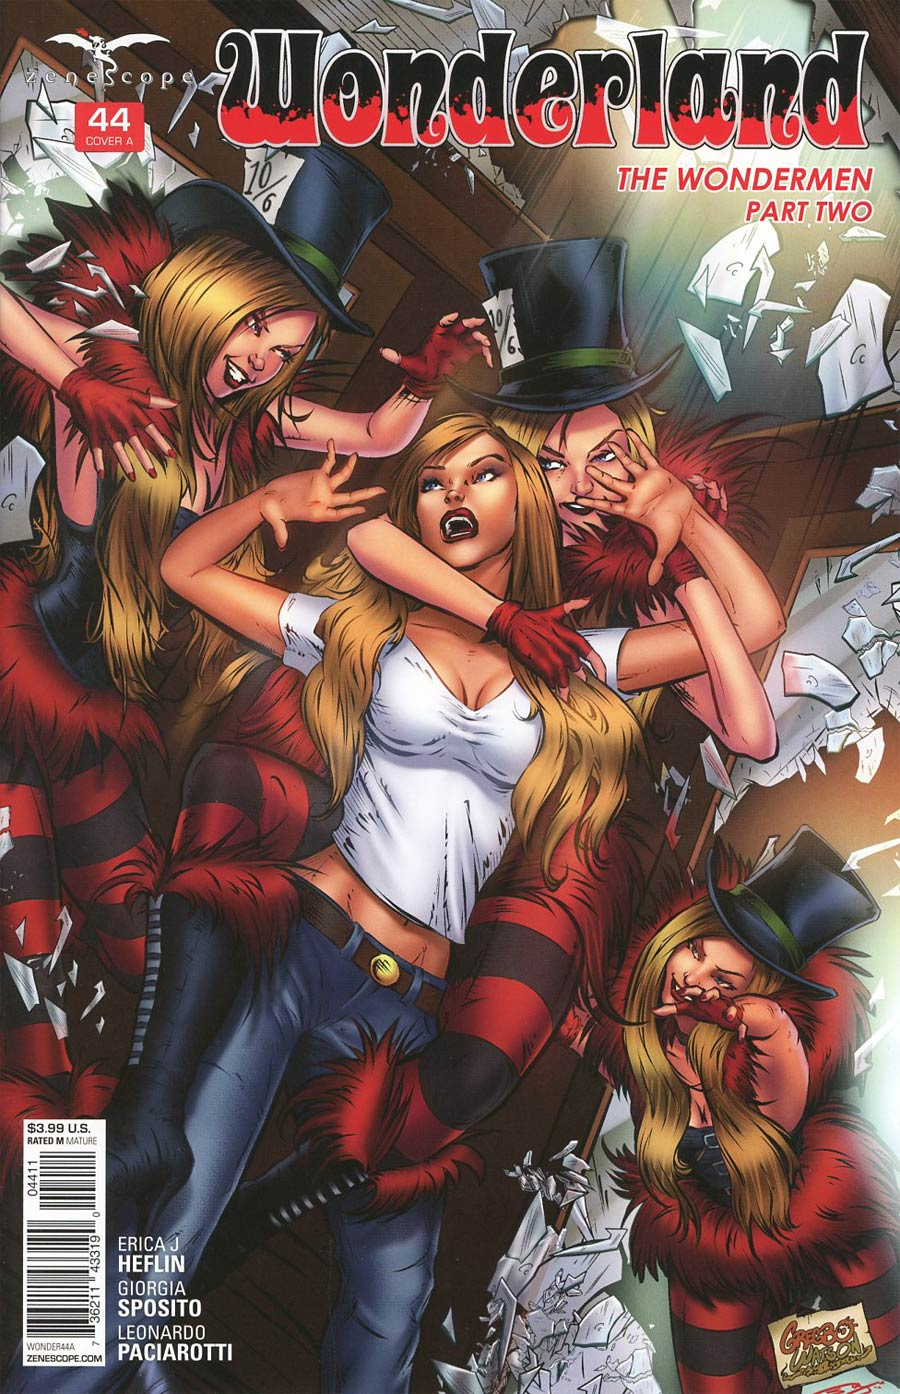 Grimm Fairy Tales Presents Wonderland Vol 2 #44 Cover A Gregbo Watson